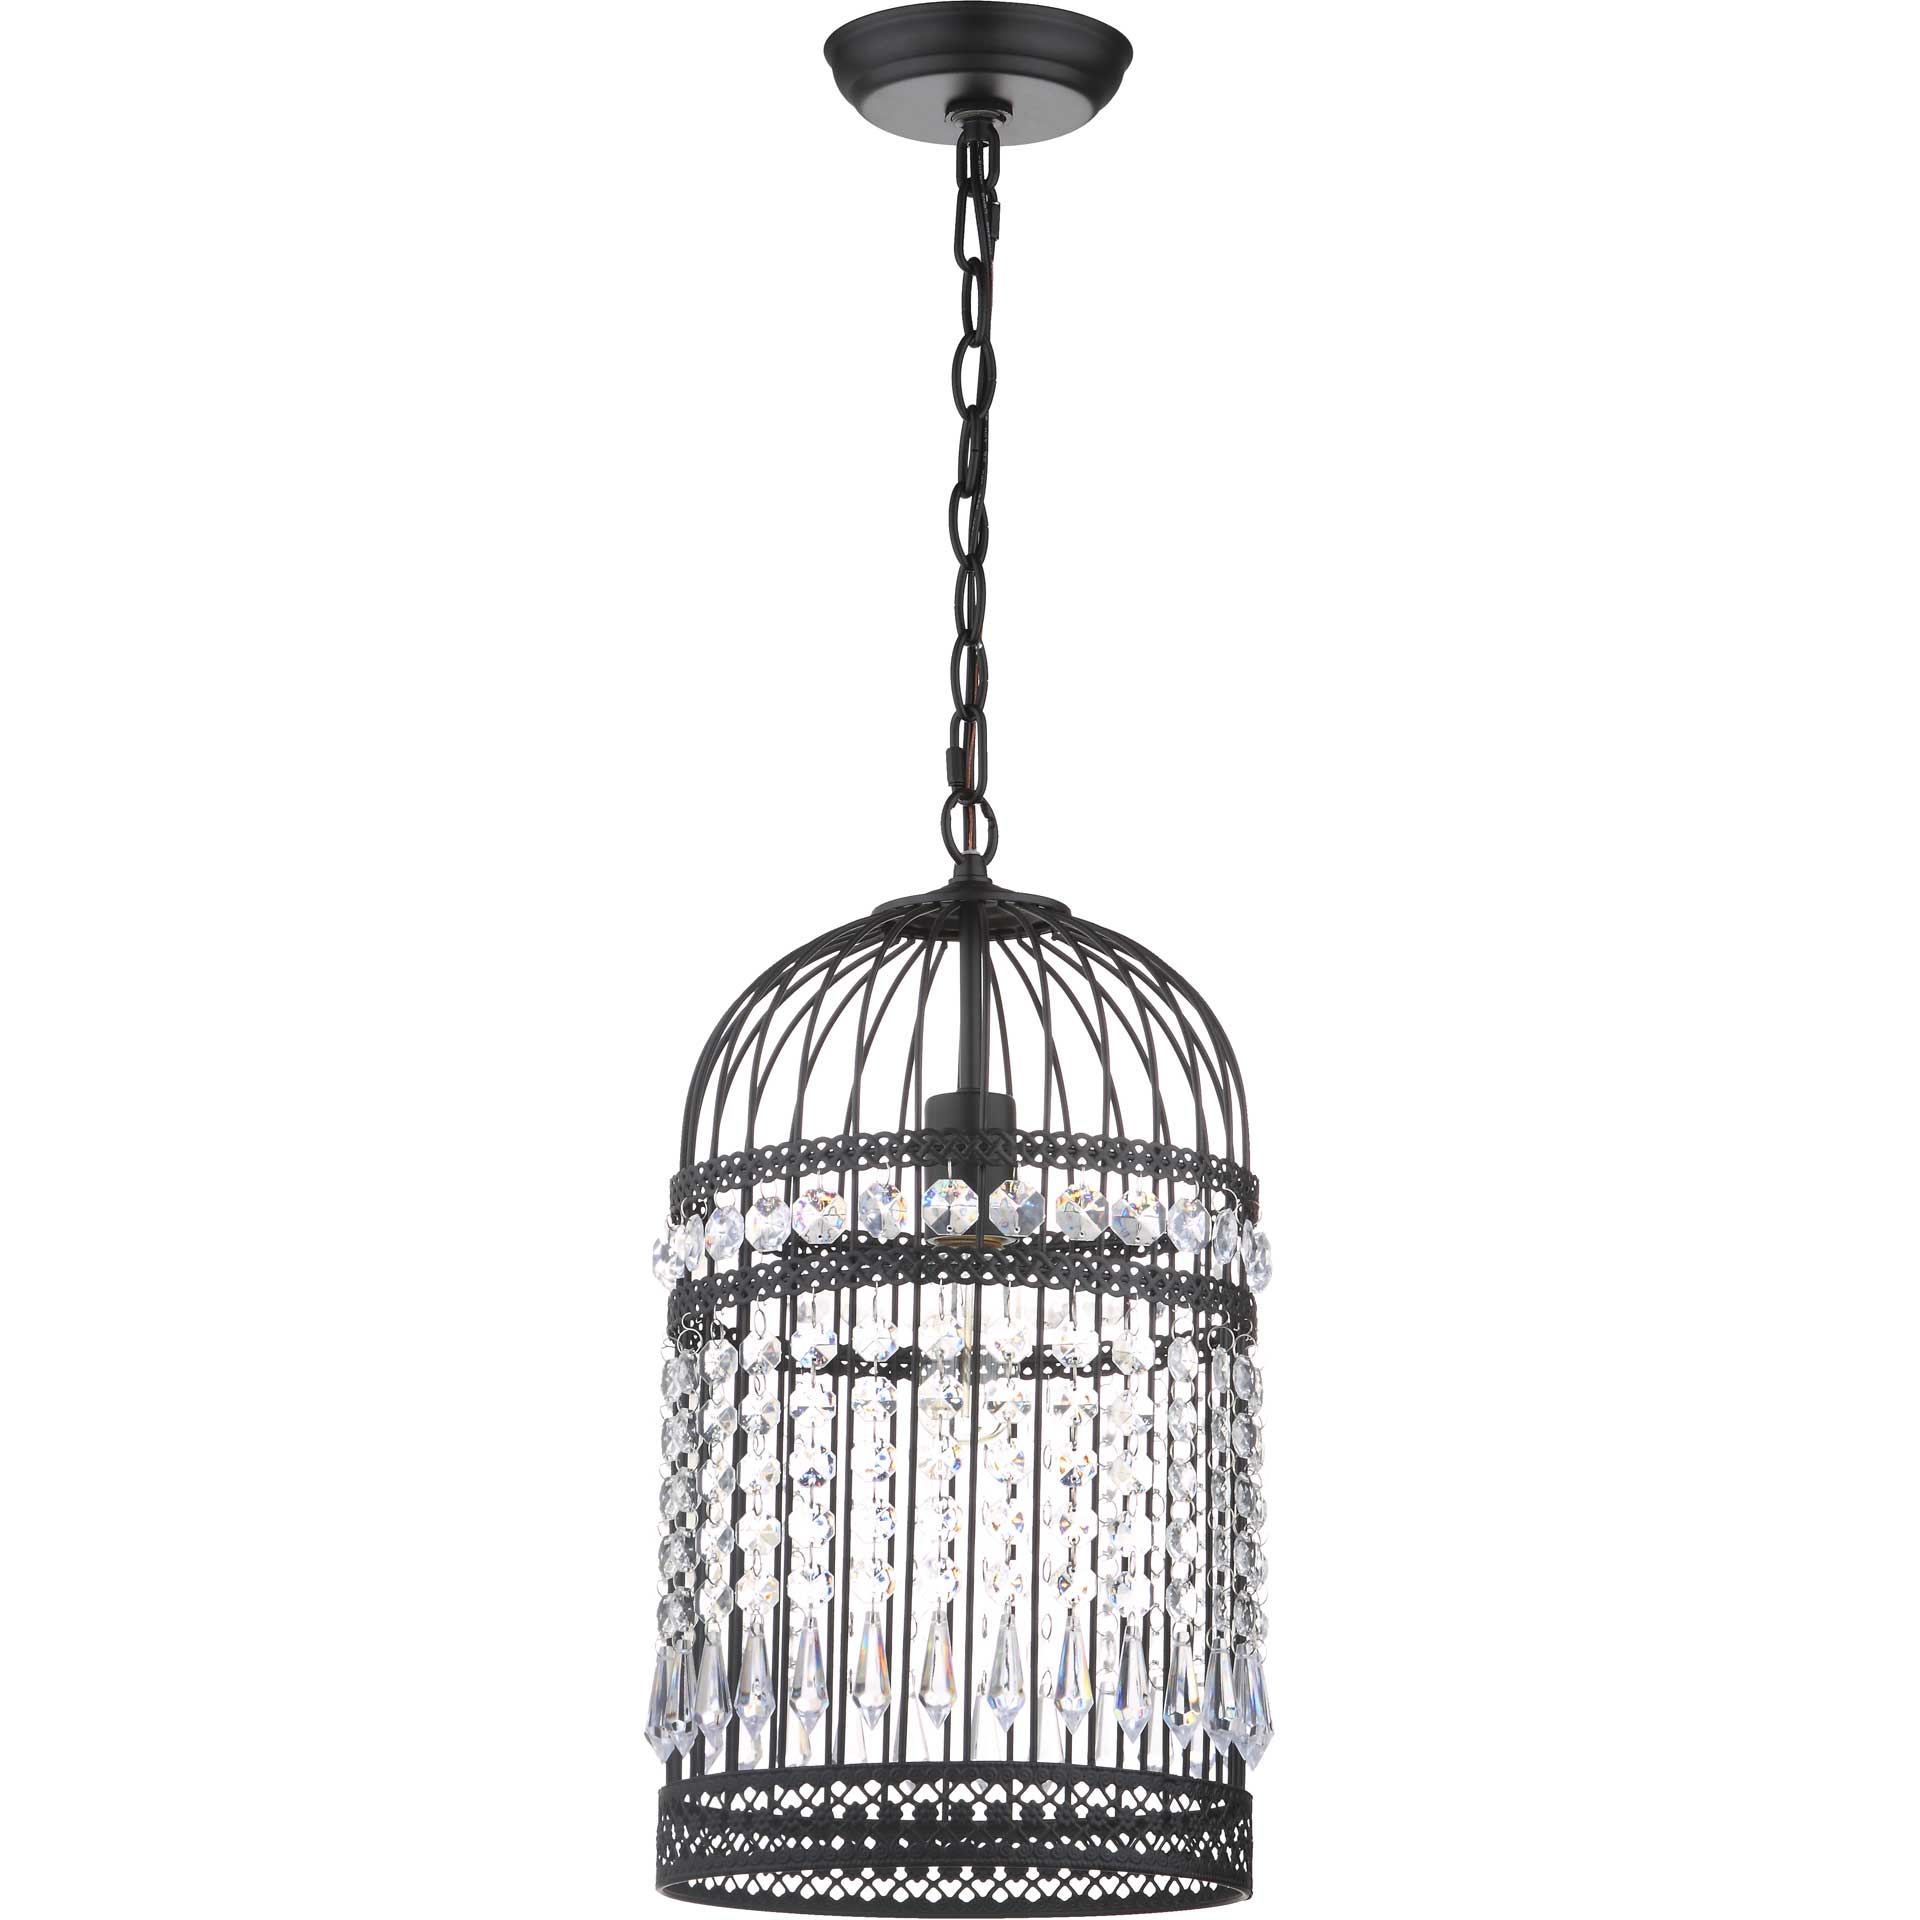 Eliana Bird Cage Adjustable Pendant Black